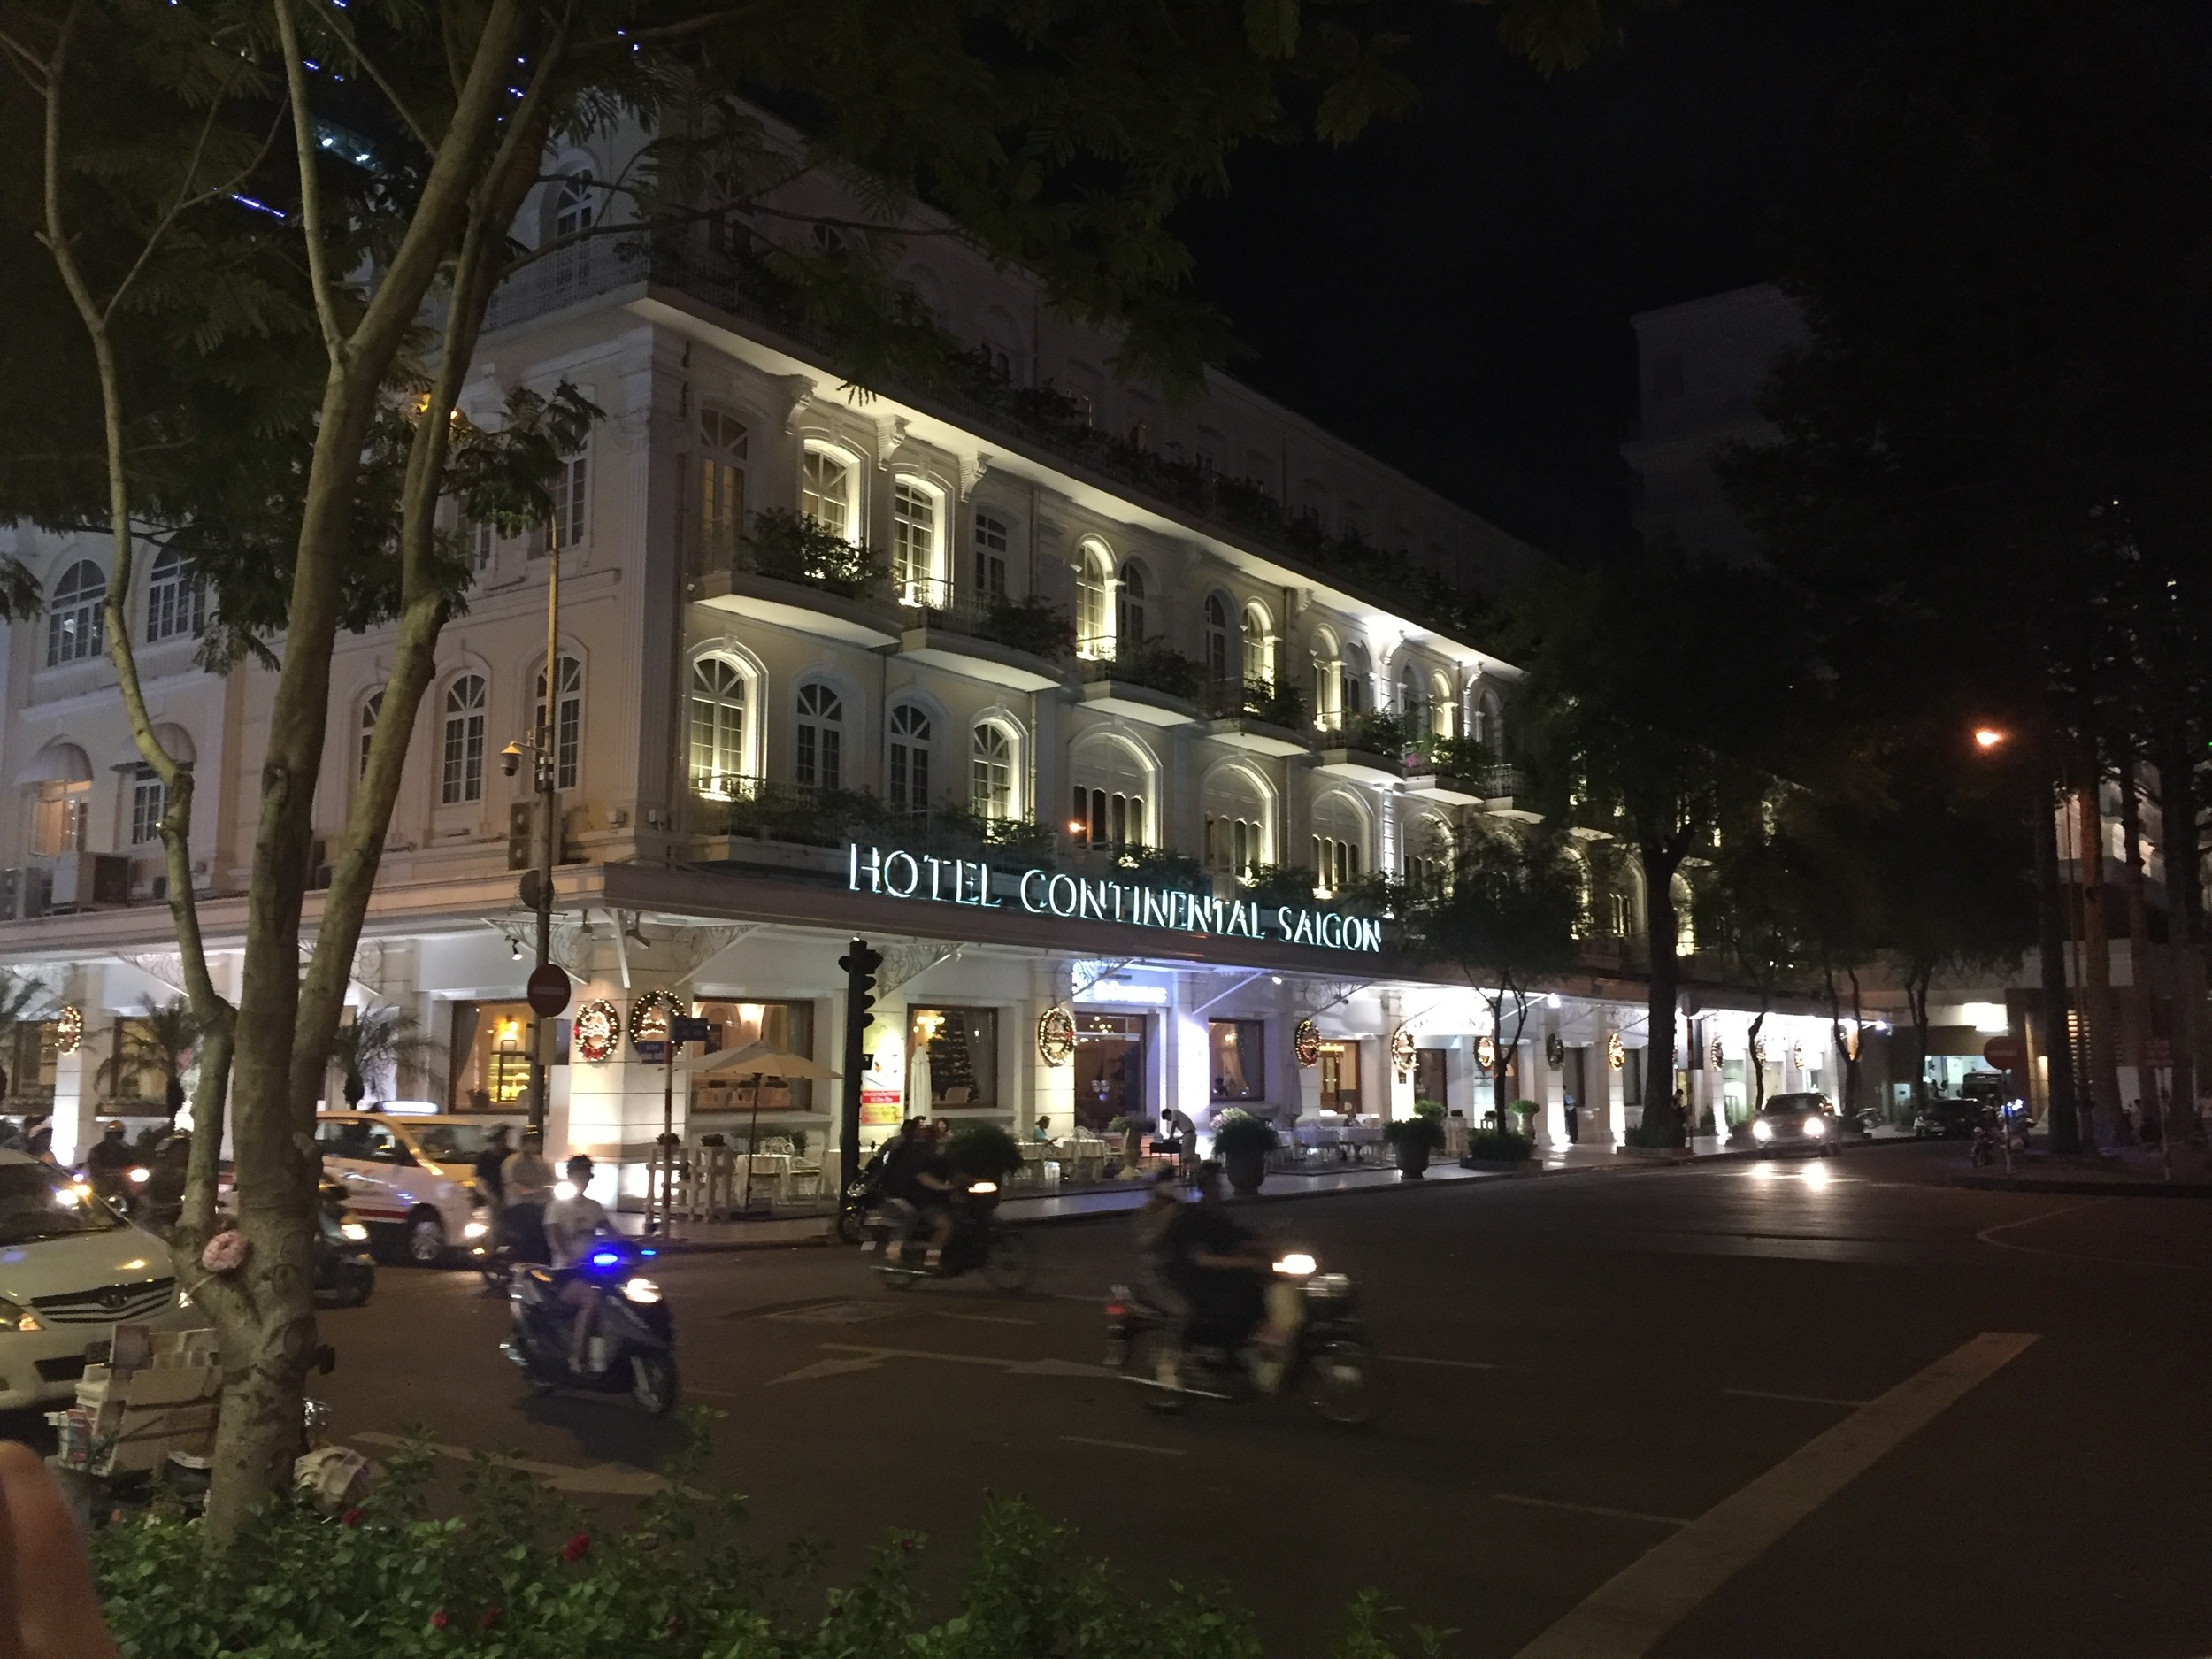 During the Vietnam War ,  the Hotel Continental Saigon (then called the Continental Palace) was news central for American journalists from publications like Newsweek and magazines whose news bureaus were located there.